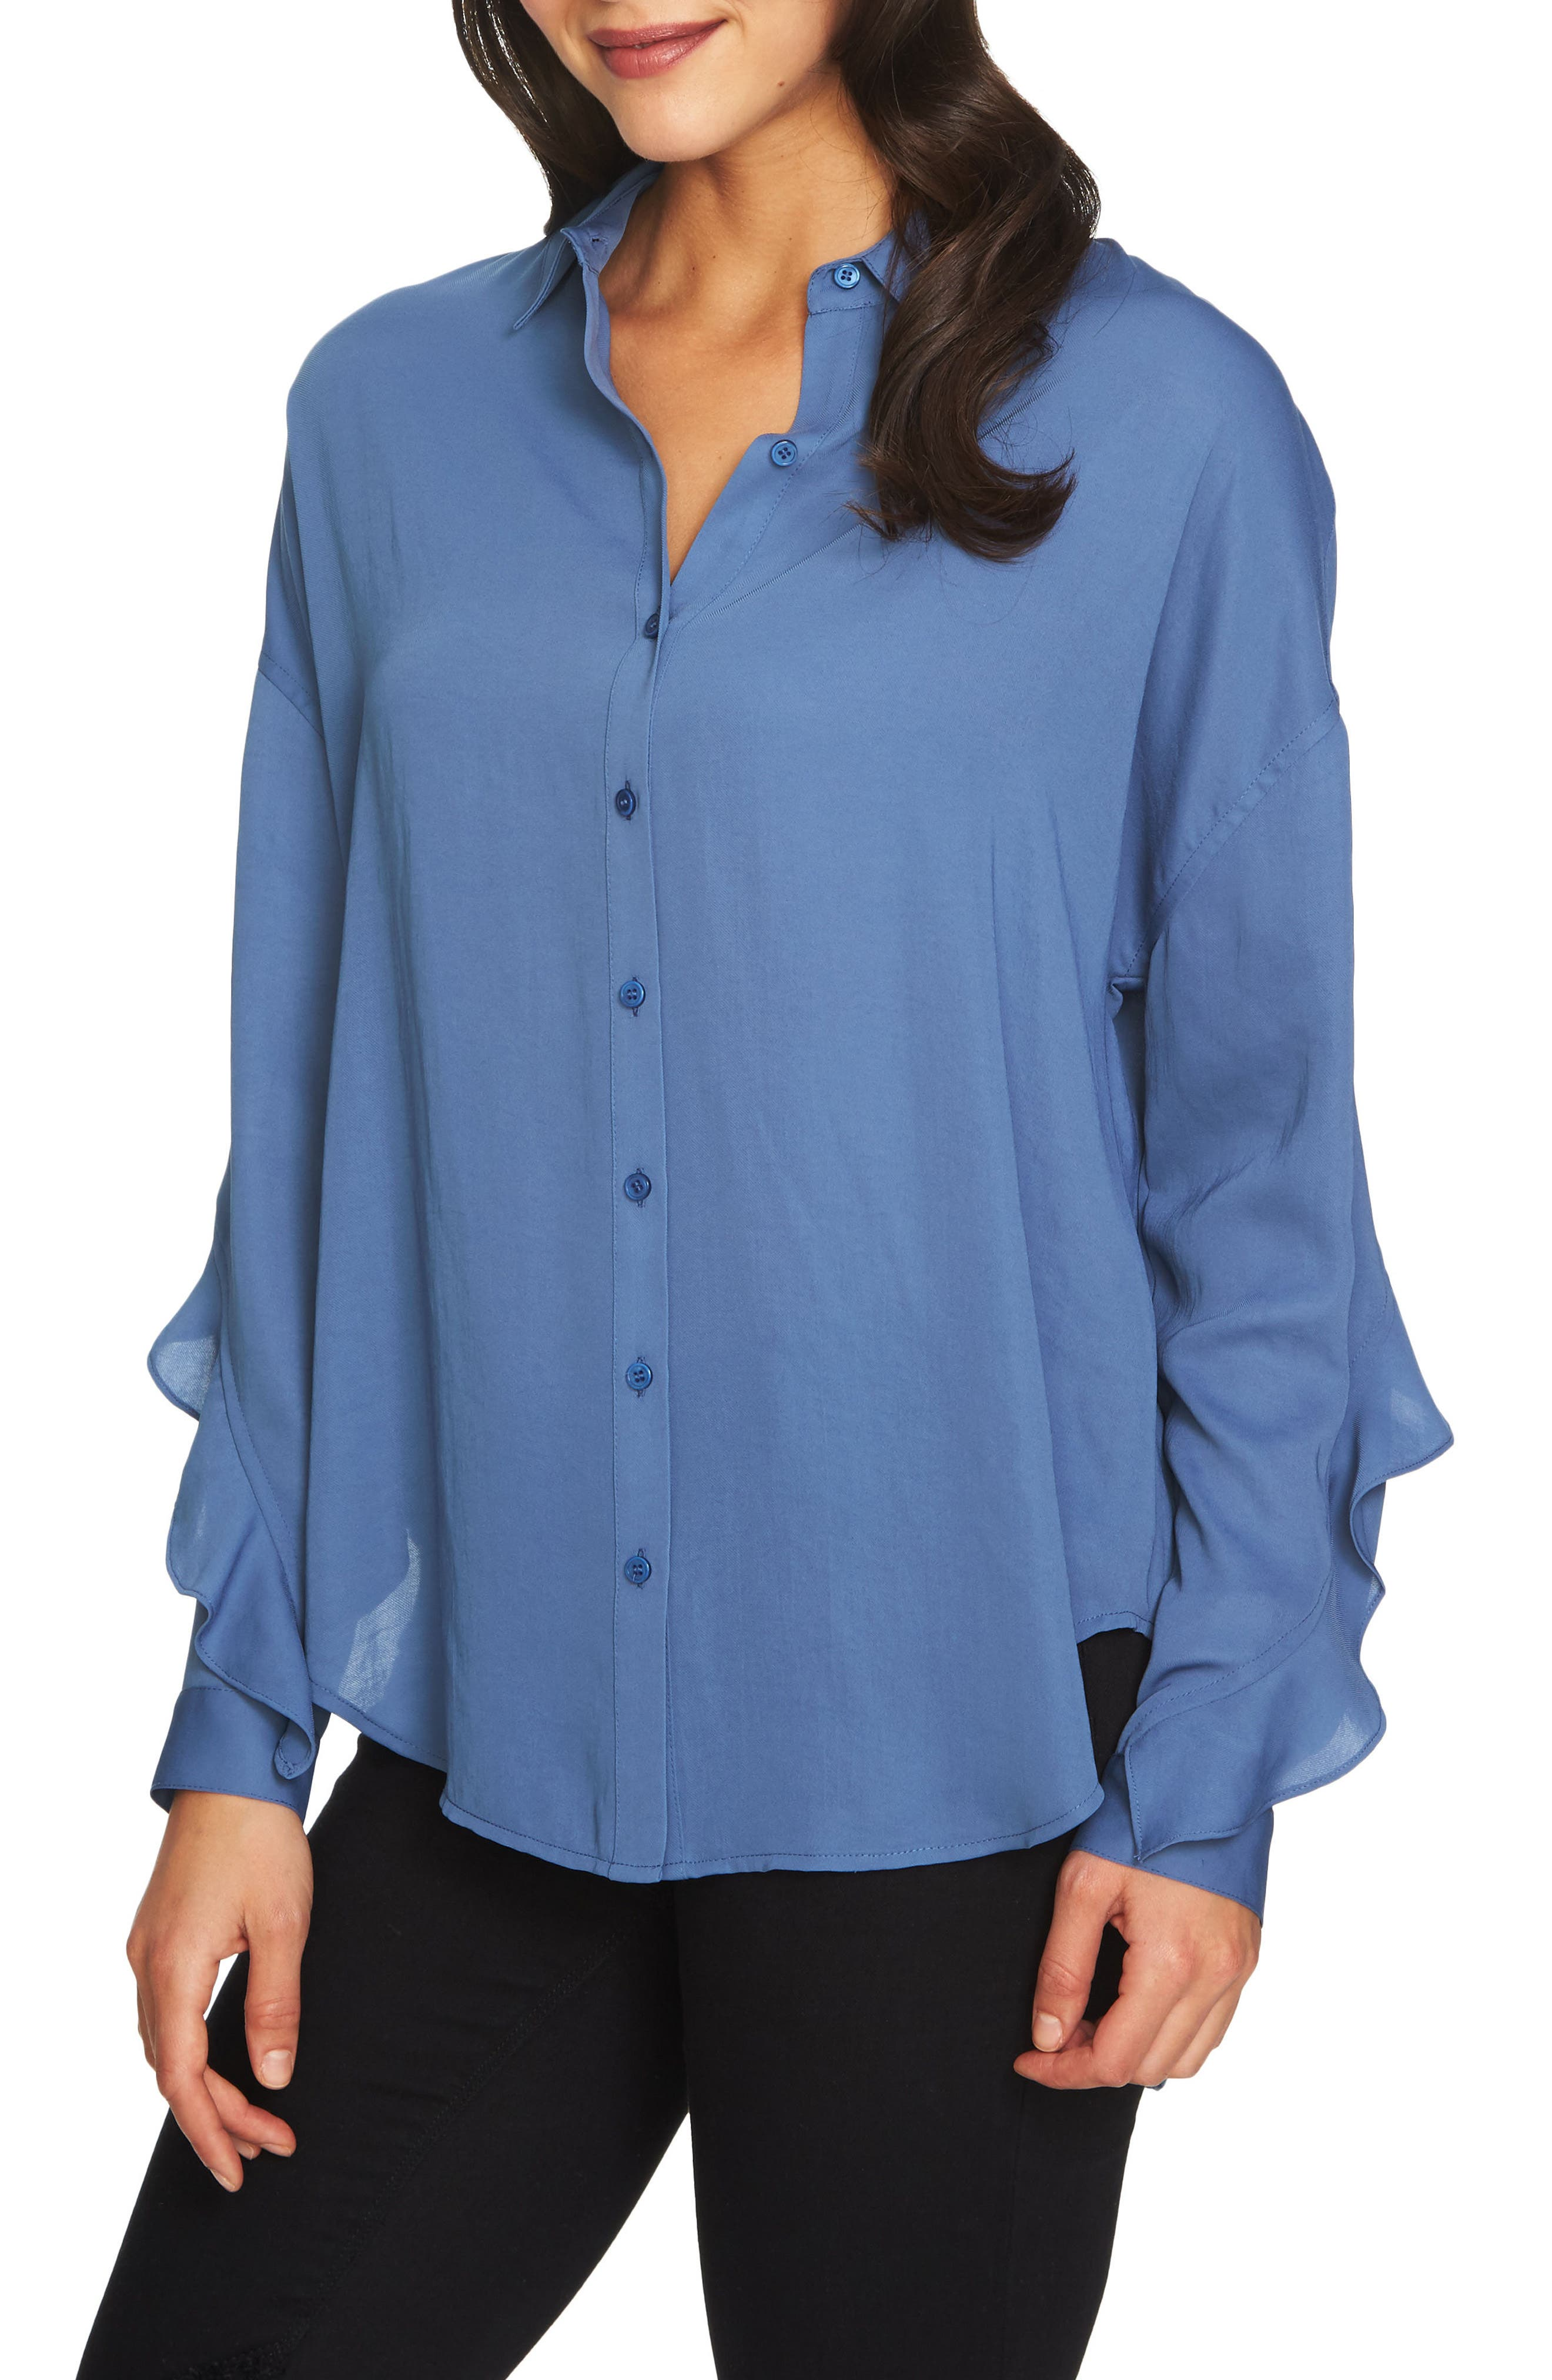 Alternate Image 1 Selected - 1.STATE Ruffle Slit Back Blouse